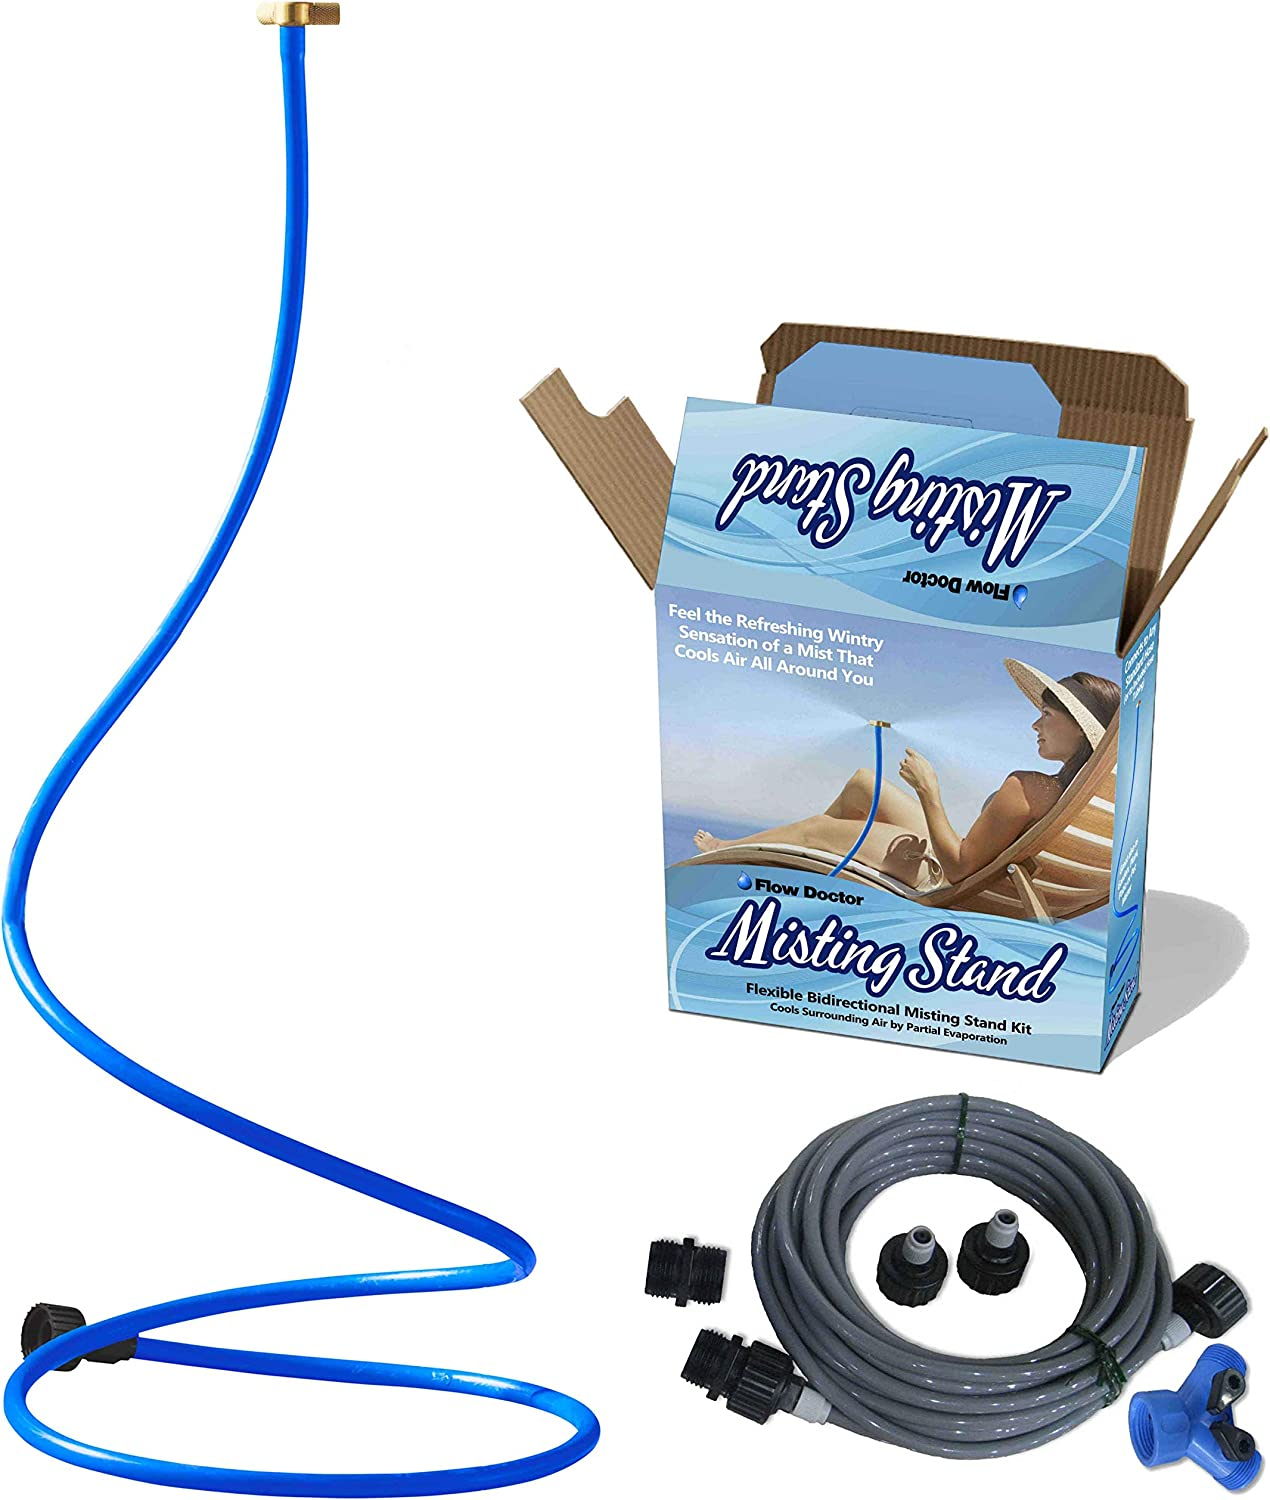 FLOW DOCTOR Bidirectional Misting Stand Air Mister Maker Provides Cooling Mist in Two Directions Simultaneously, Two Misters in One, Long 2 M Self Standing, Professional High Output Spa Mister Heads